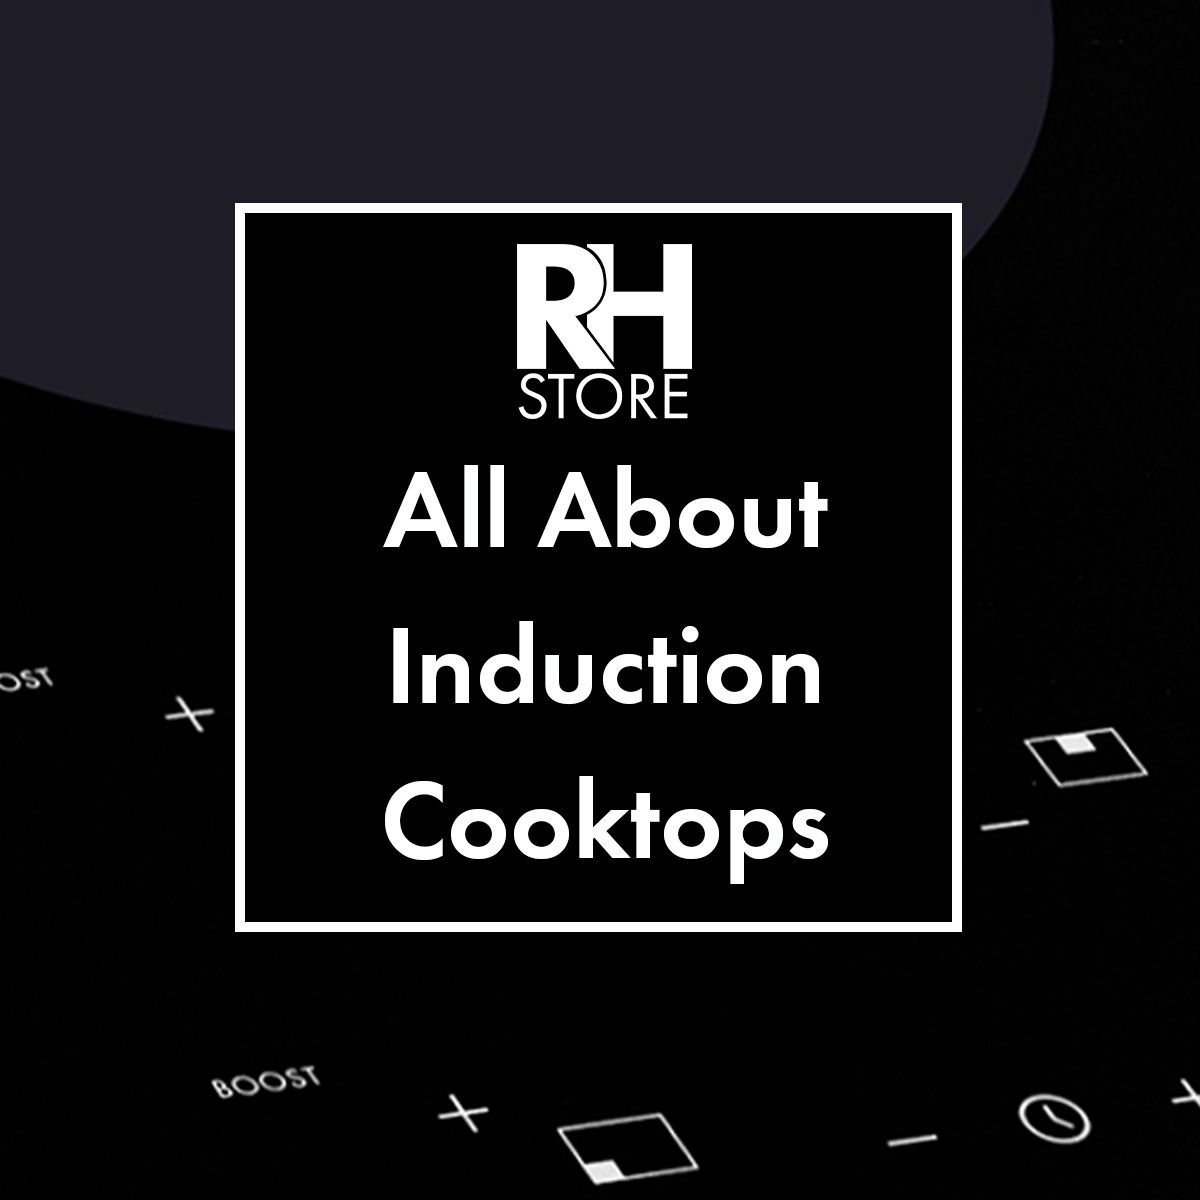 All About Induction Cooktops